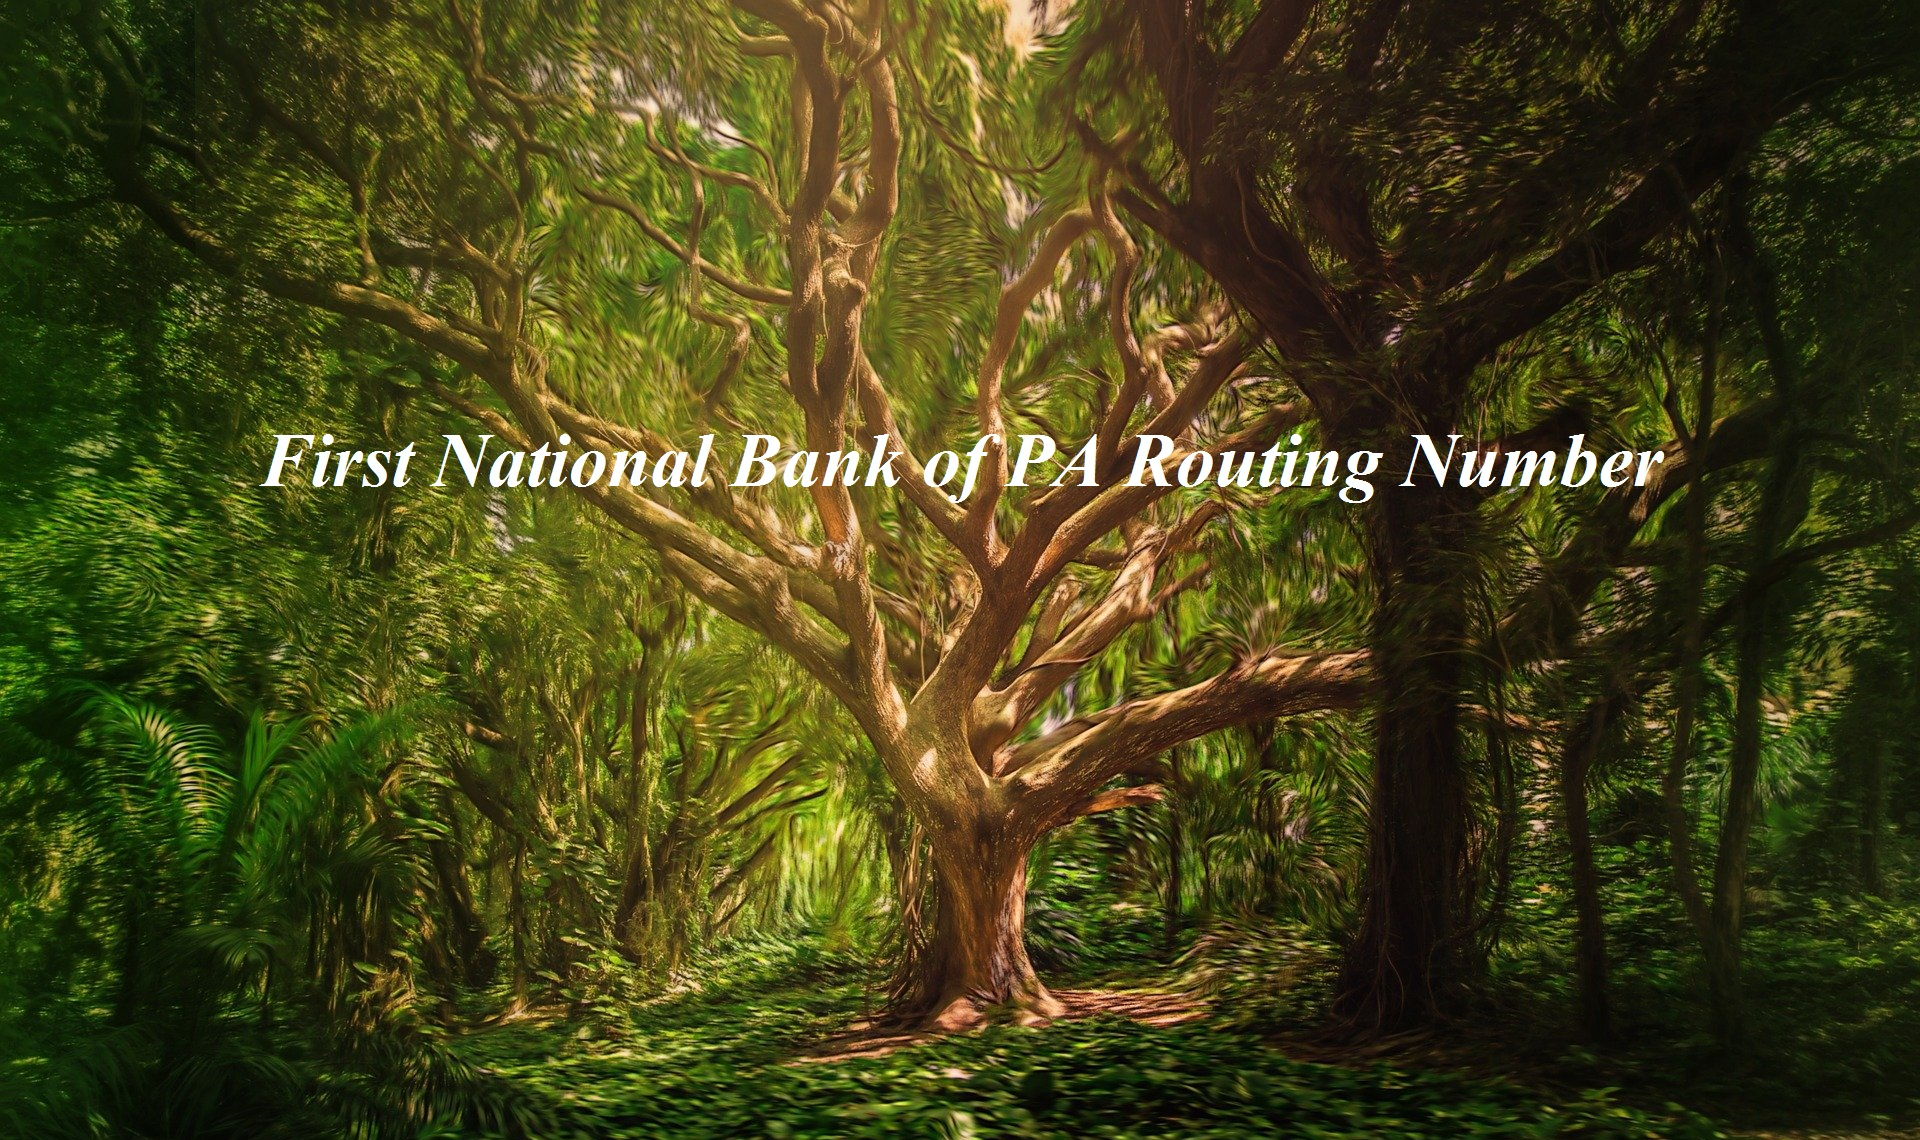 First National Bank of PA Routing Number